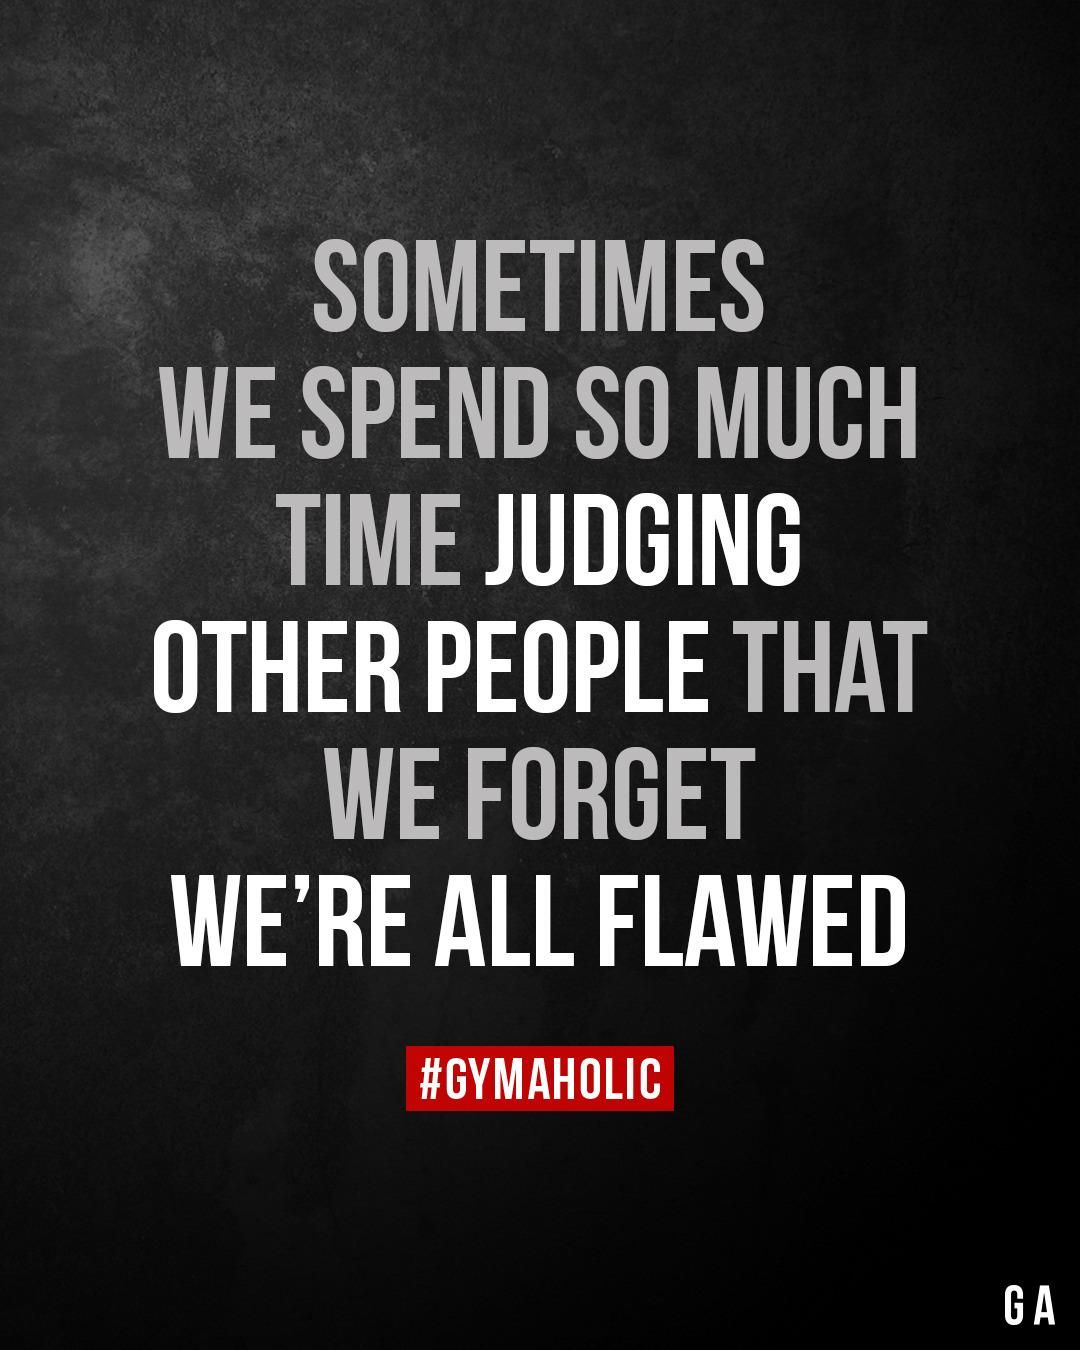 Sometimes We Spend So Much Time Judging Other People Judging Others Quotes Judging People Quotes Inspirational Quotes With Images